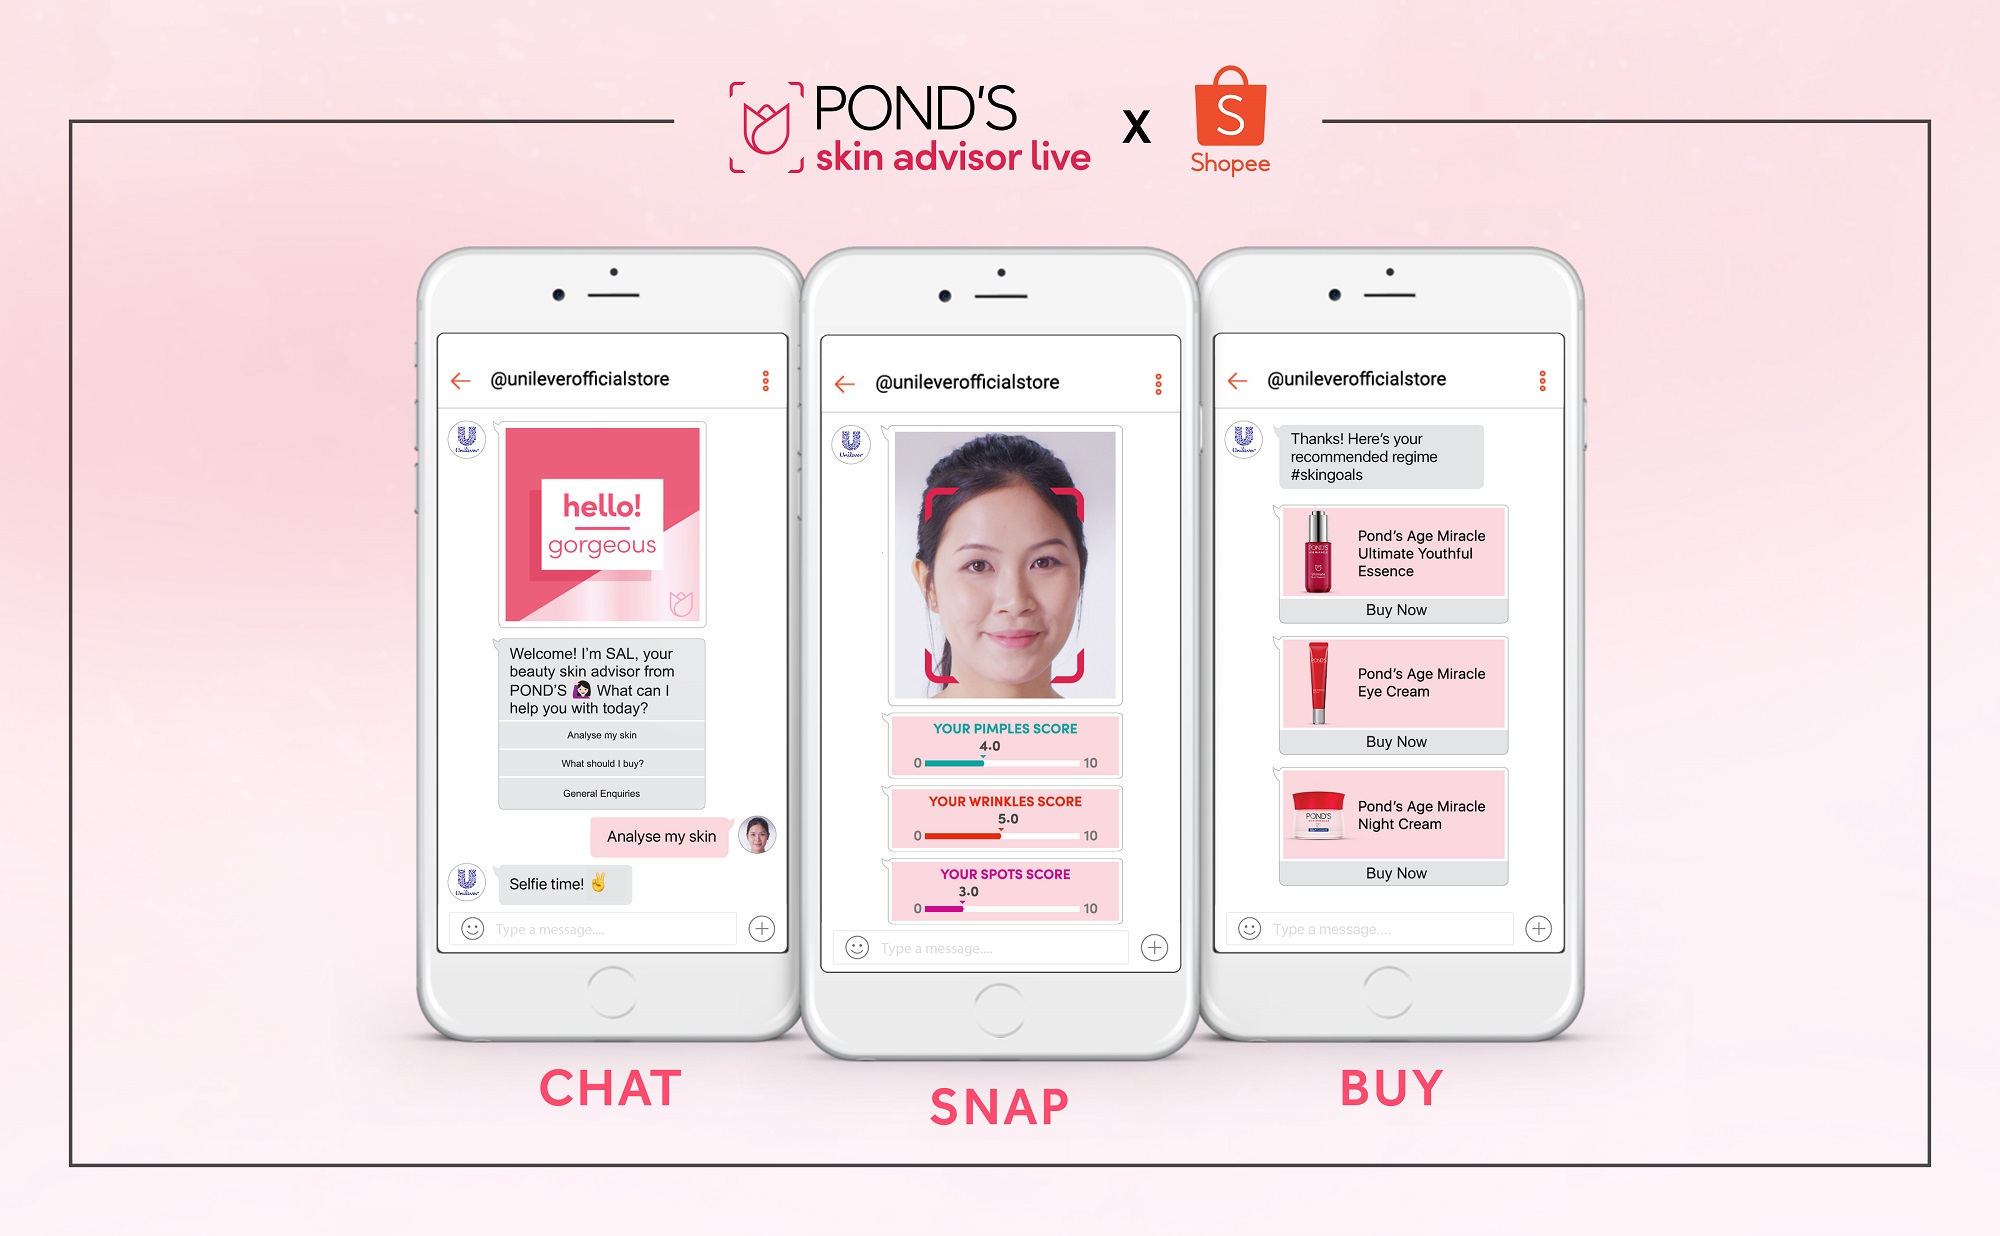 2021 skincare solutions just a click away with PONDS Skin Advisor Live chatbot now on Shopee